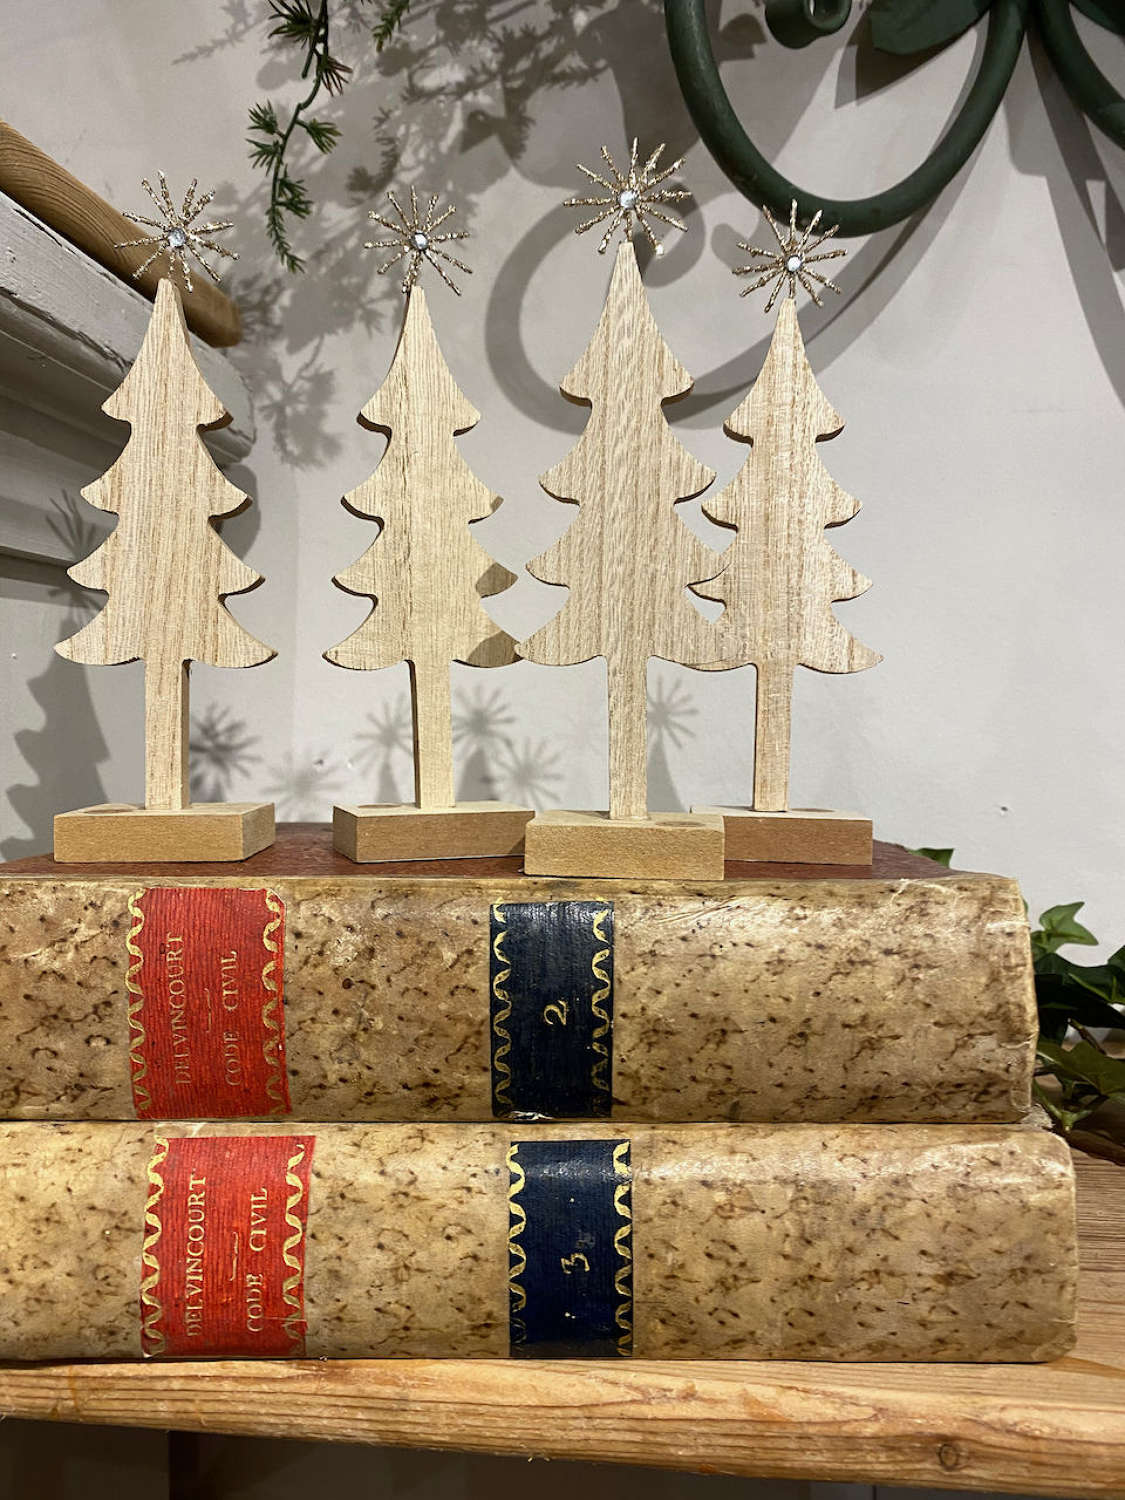 Wooden Christmas trees with sparkly star